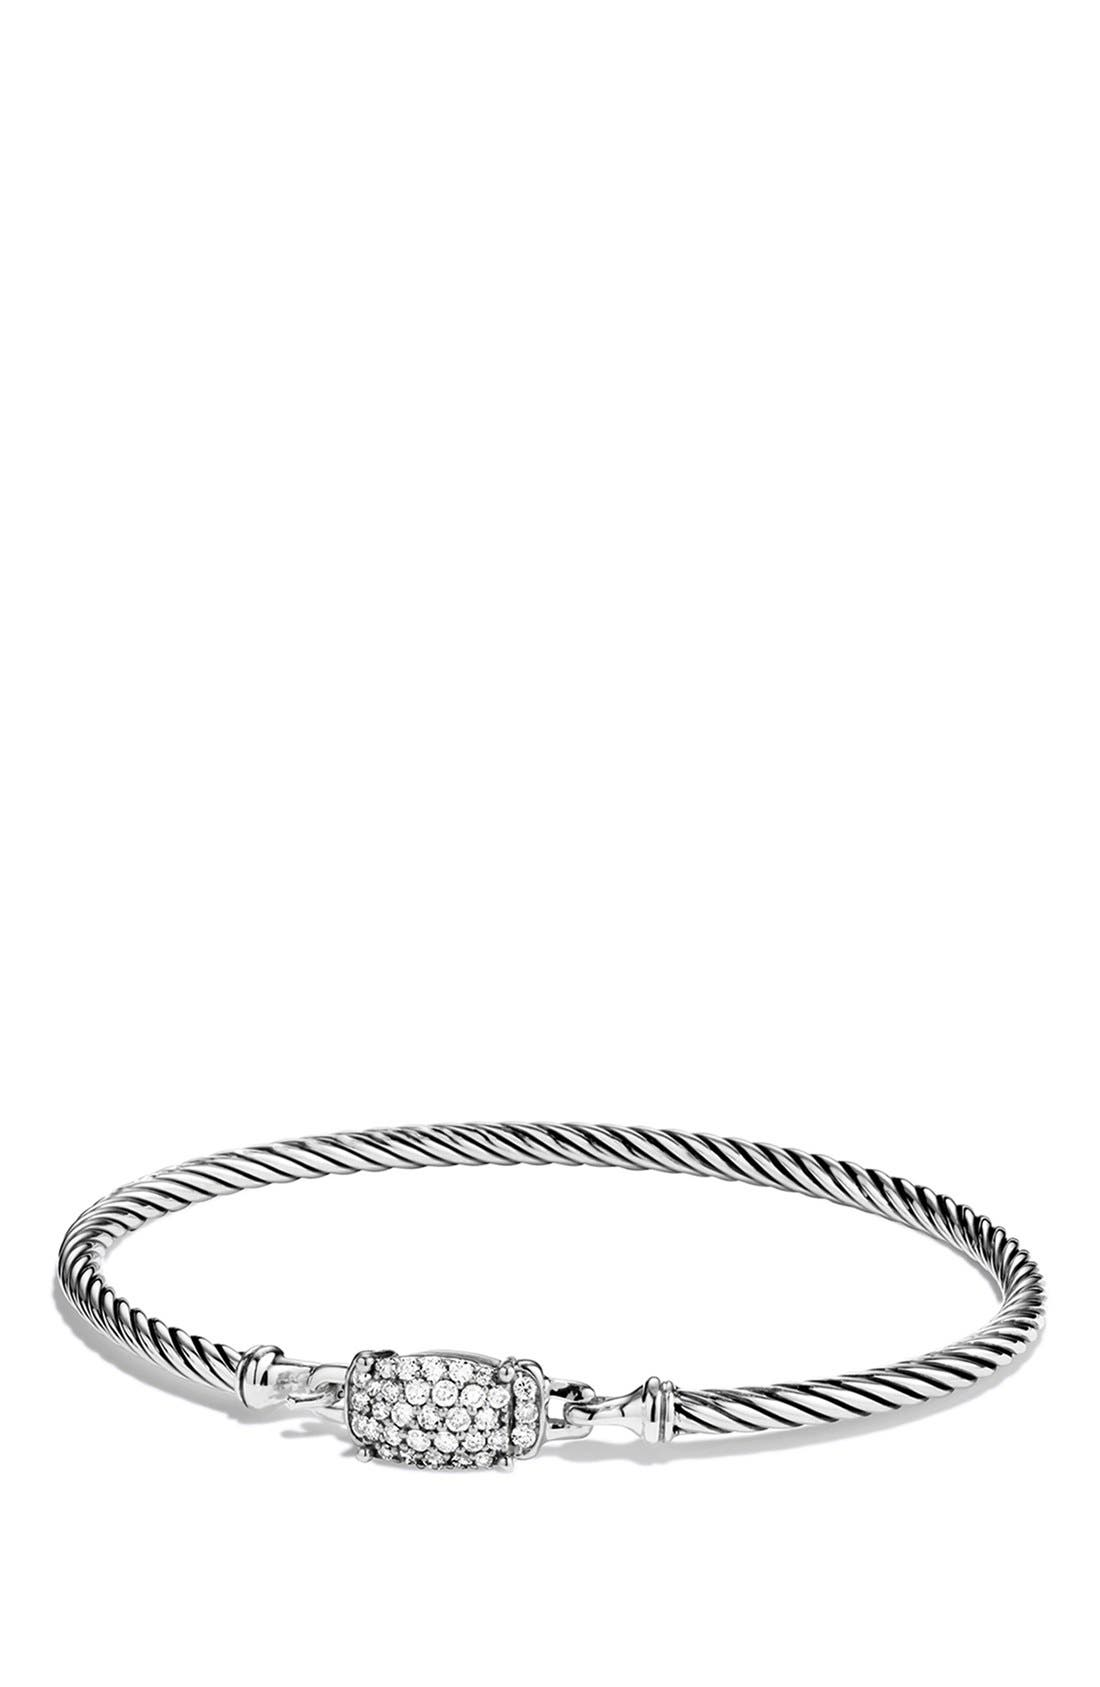 Alternate Image 1 Selected - David Yurman 'Petite Wheaton' Bracelet with Diamonds